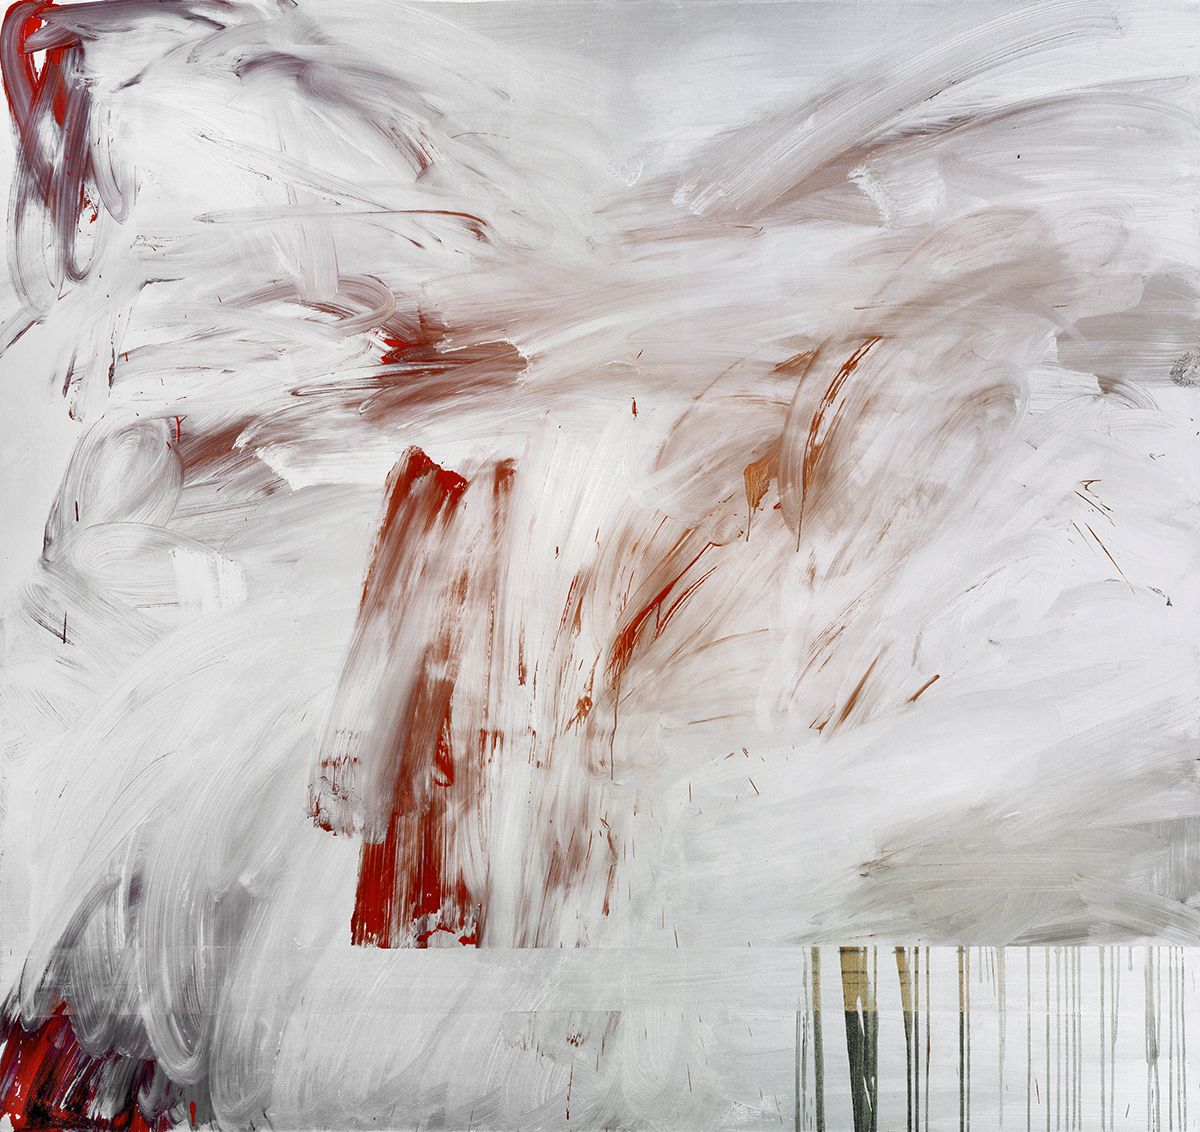 Jacqueline Humphries Judith, 2006 oil on linen 90 x 96 inches 228.6 x 243.8 cm